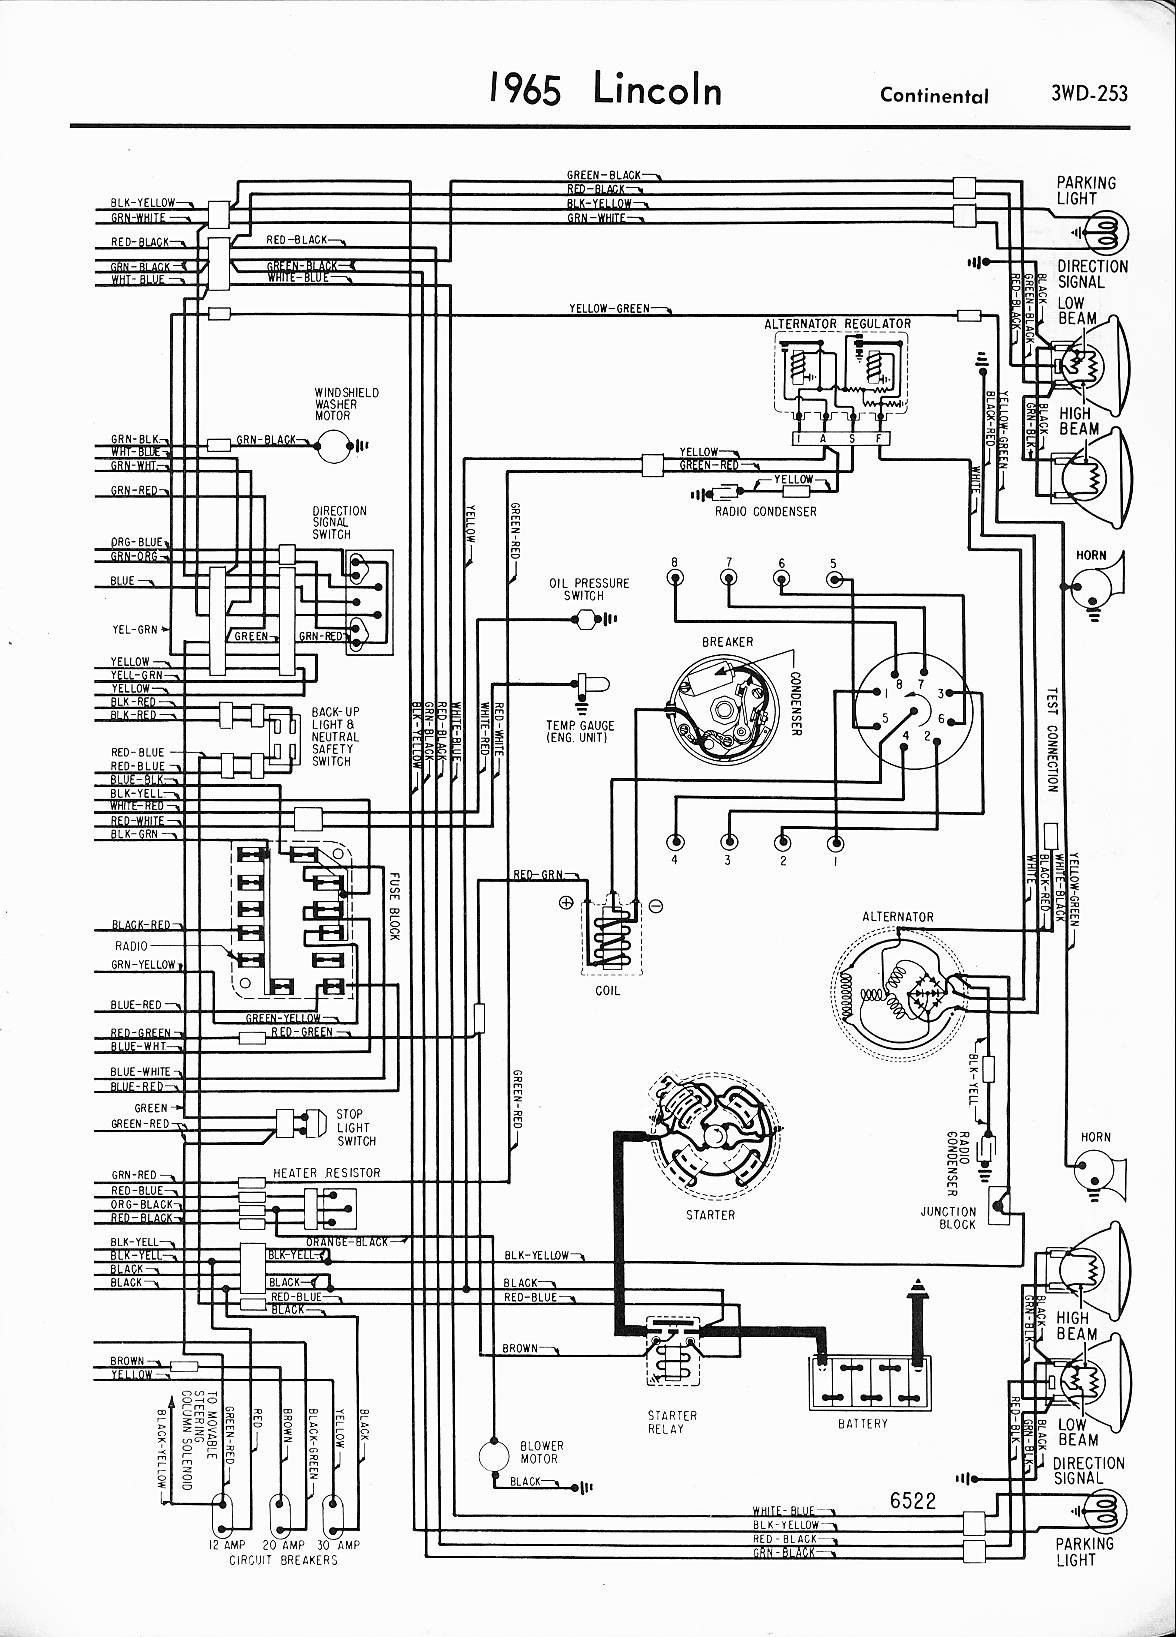 New Wiring Diagram Lincoln Town Car Alternator Lincoln Continental Lincoln Town Car